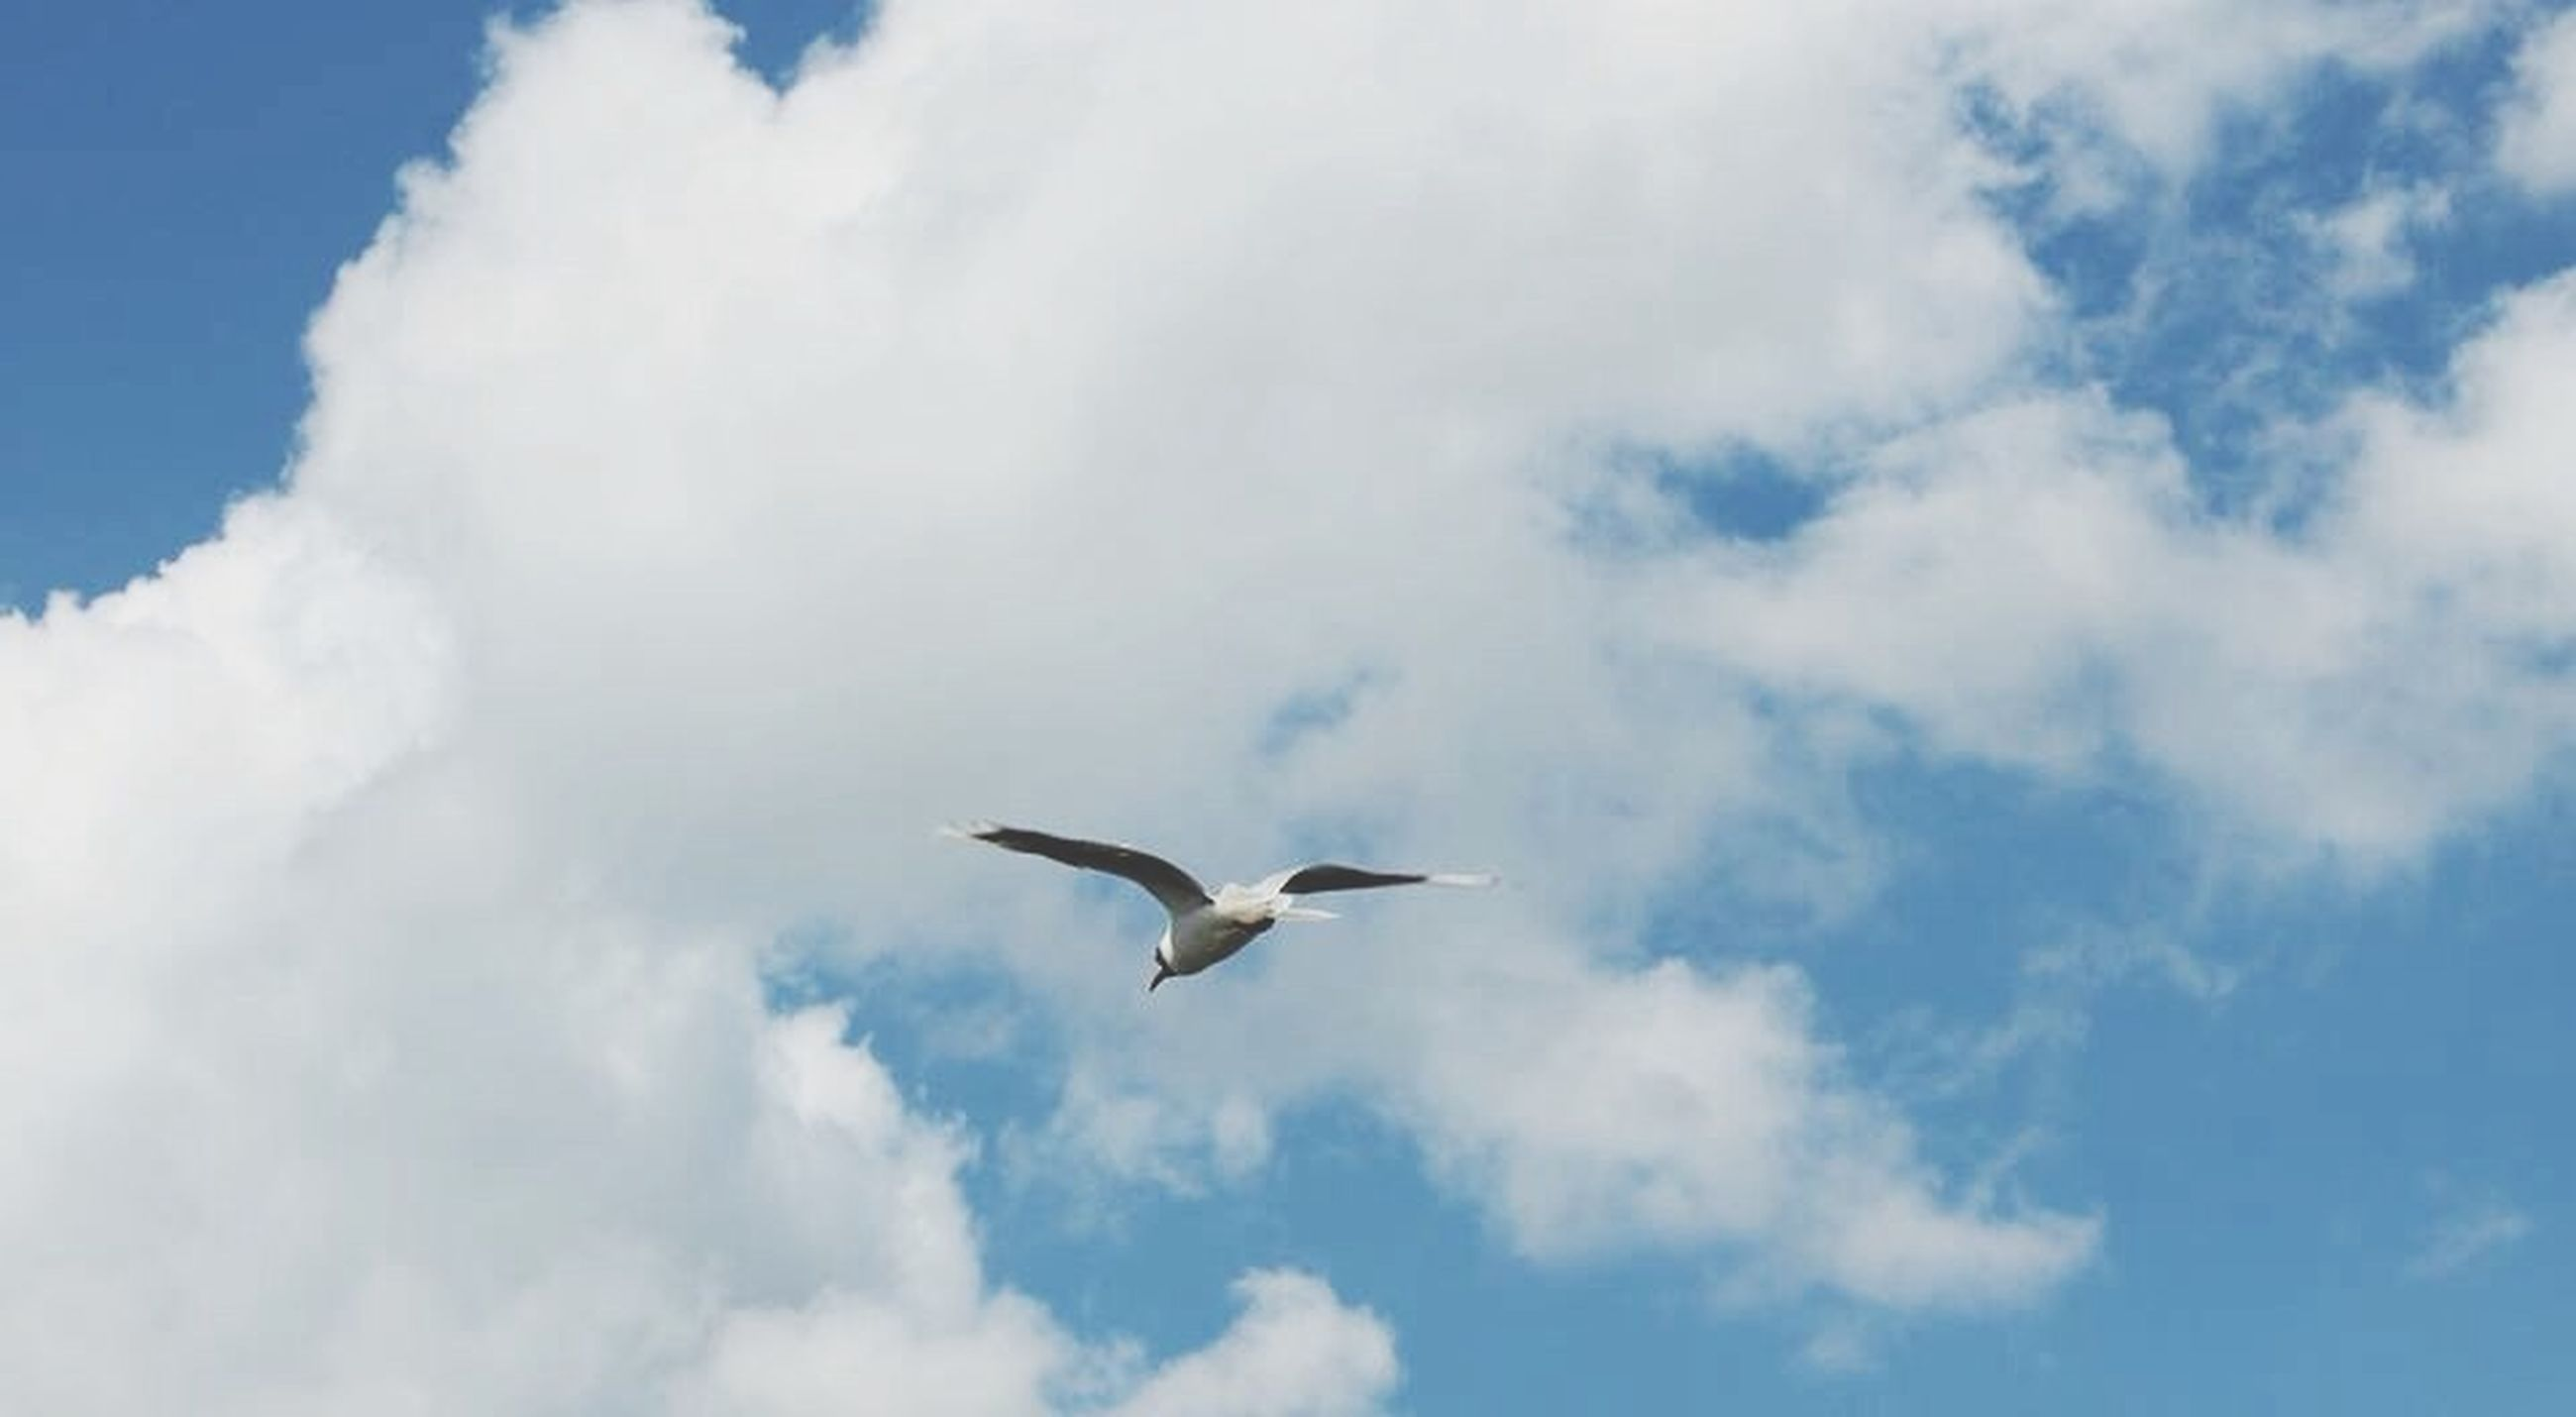 bird, animal themes, animals in the wild, flying, wildlife, low angle view, sky, spread wings, seagull, one animal, cloud - sky, mid-air, nature, blue, cloud, beauty in nature, cloudy, day, outdoors, no people